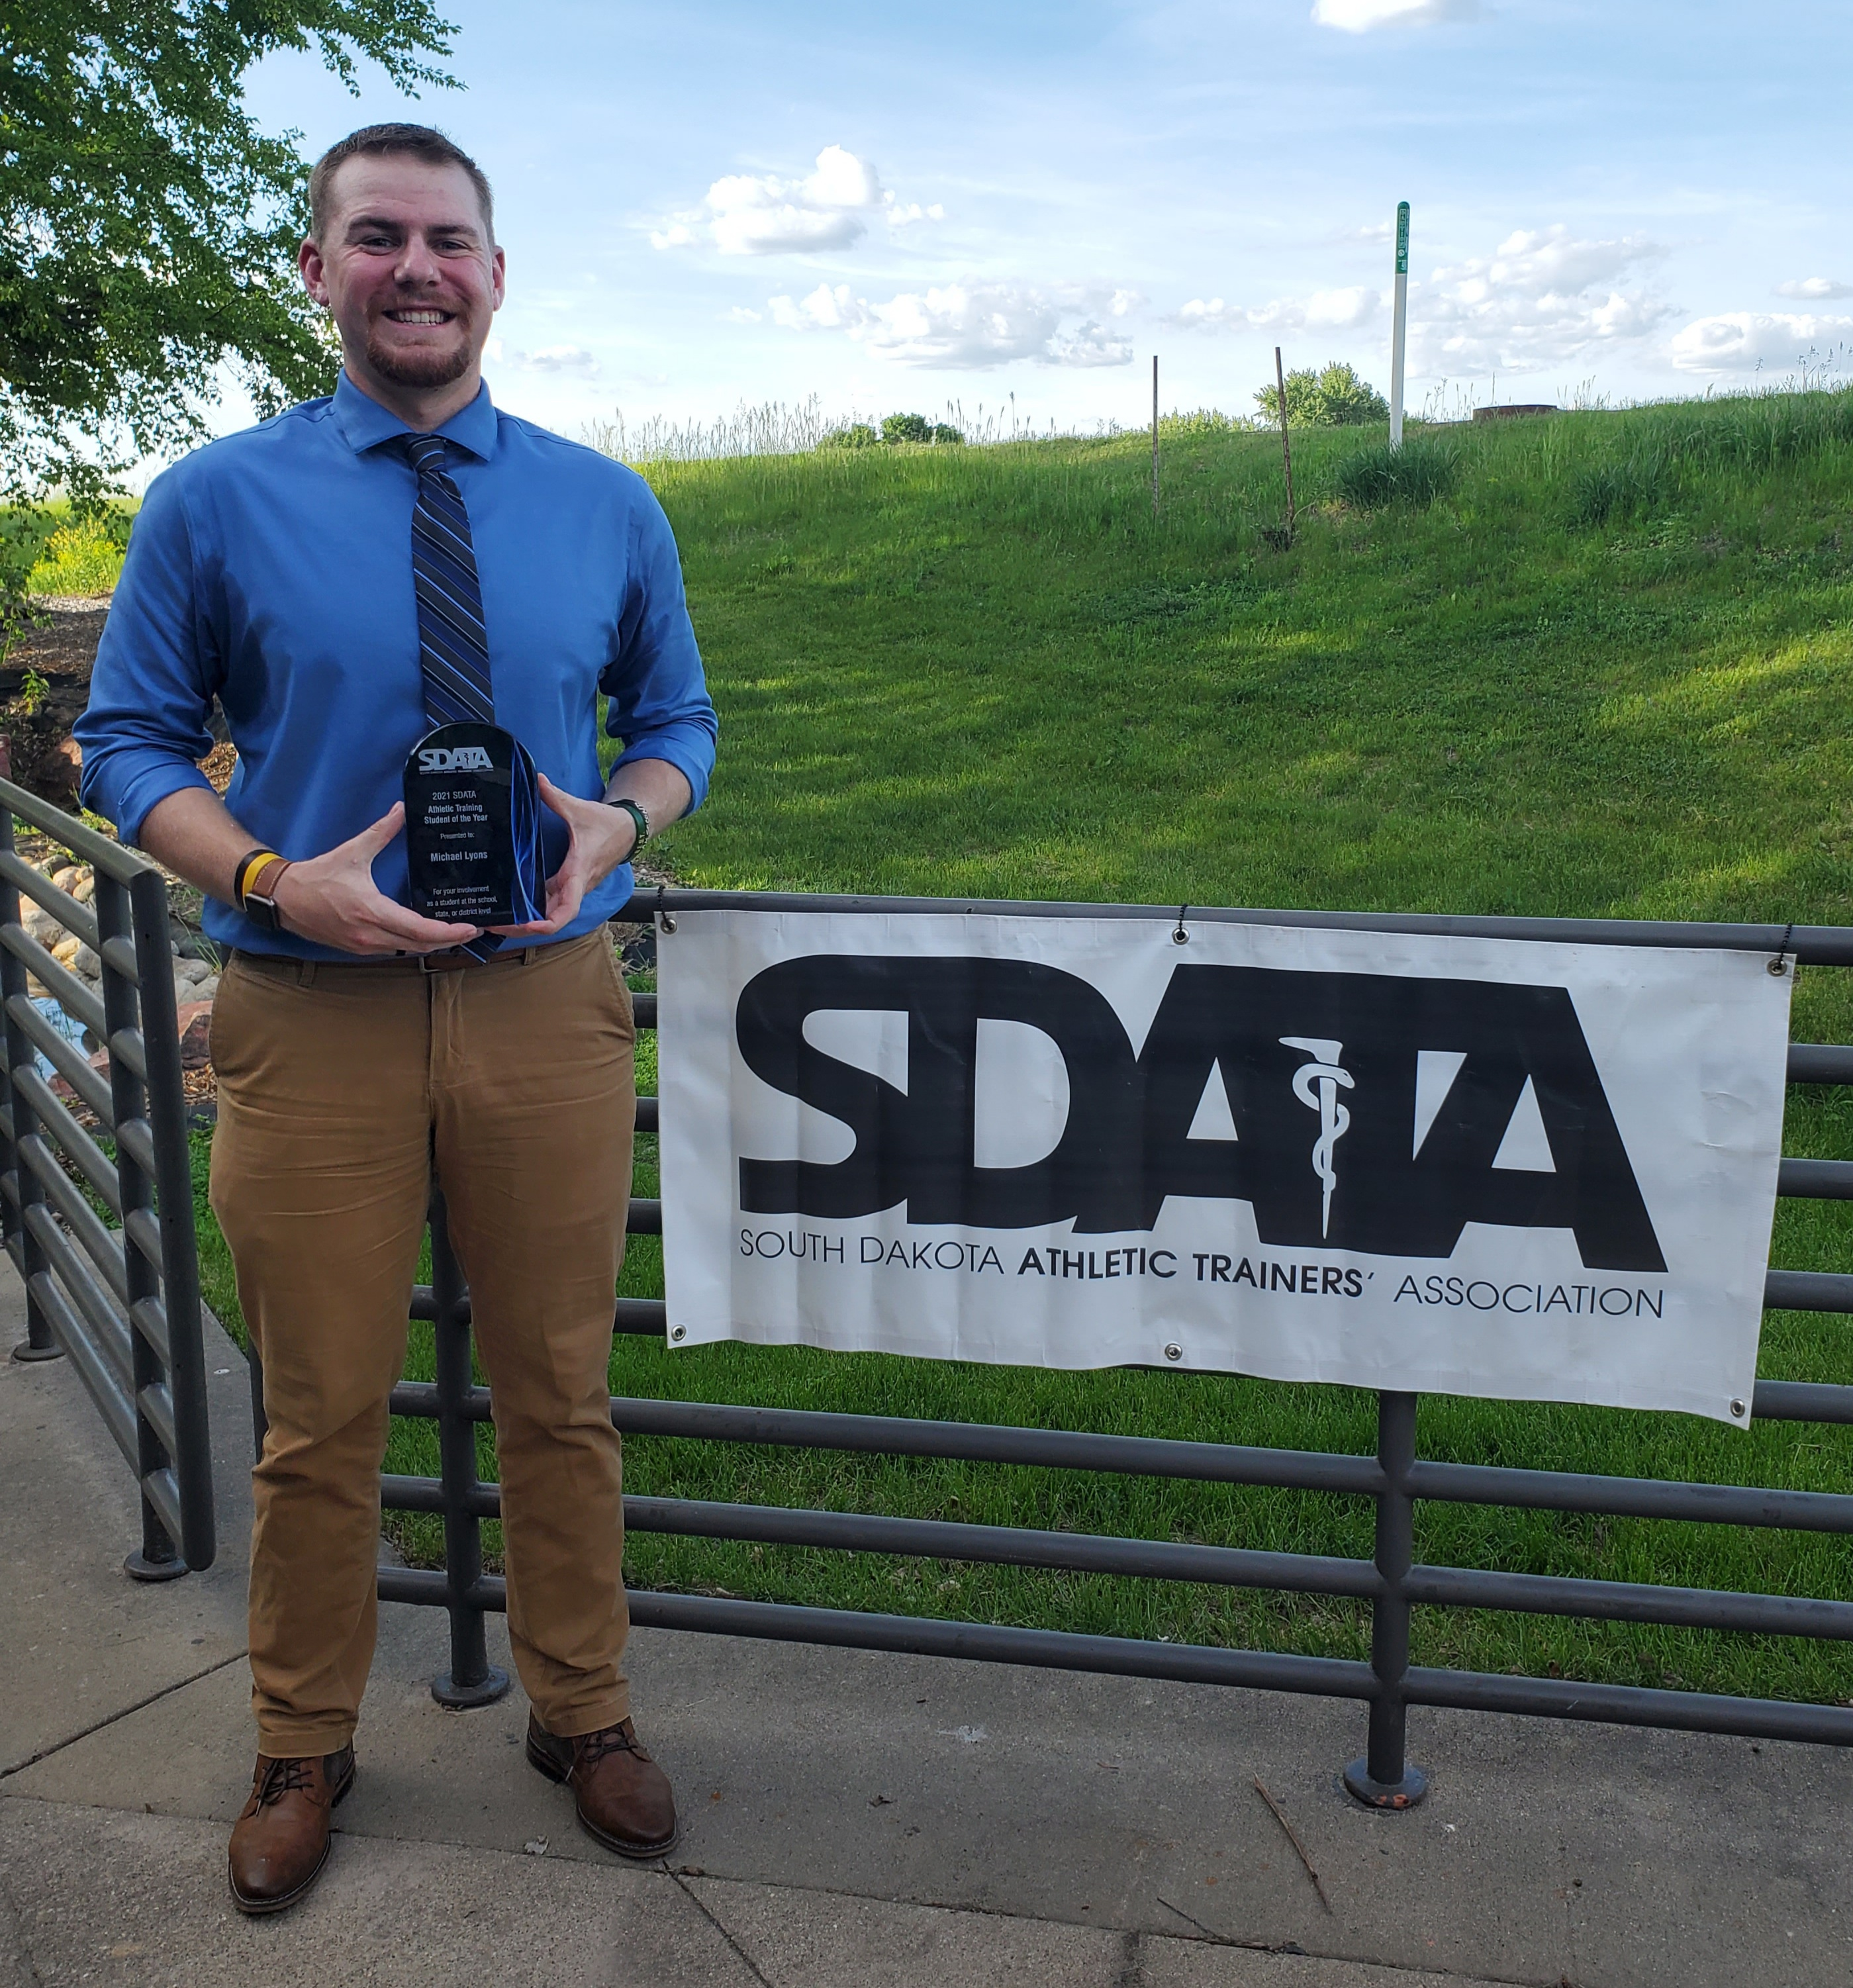 Lyons Sees South Dakota Athletic Trainer Student of the Year Award as Inspiration